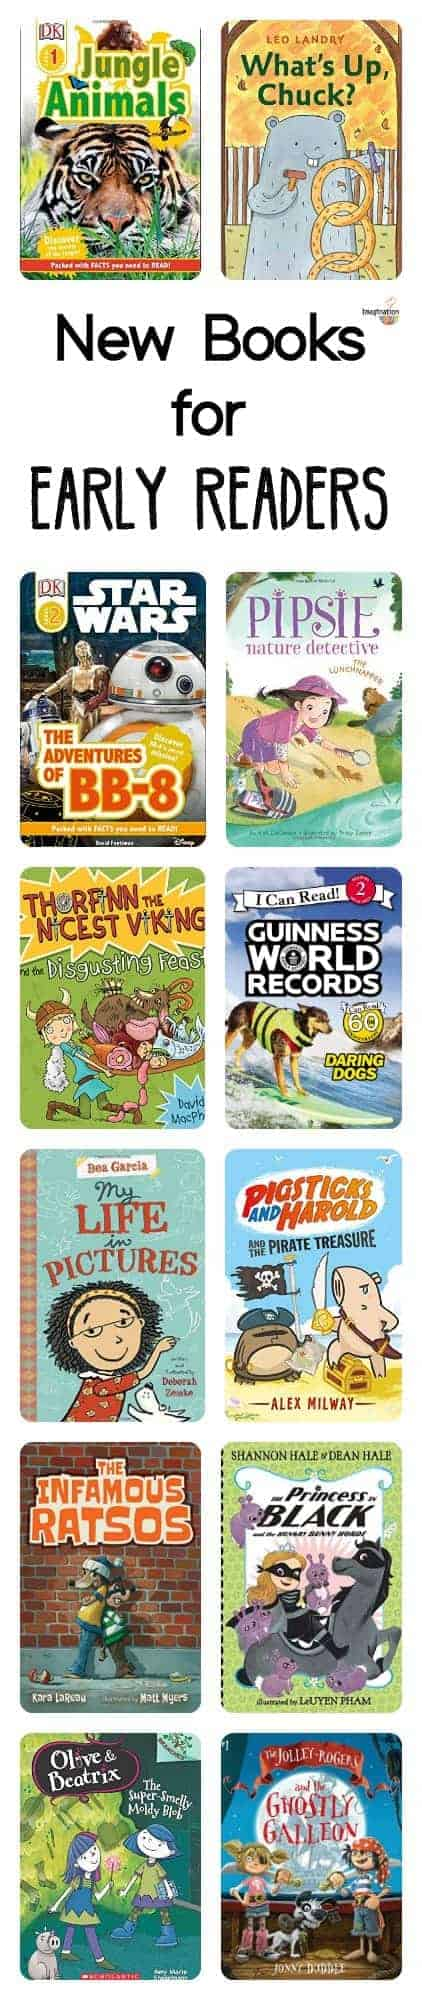 new book choices for early readers